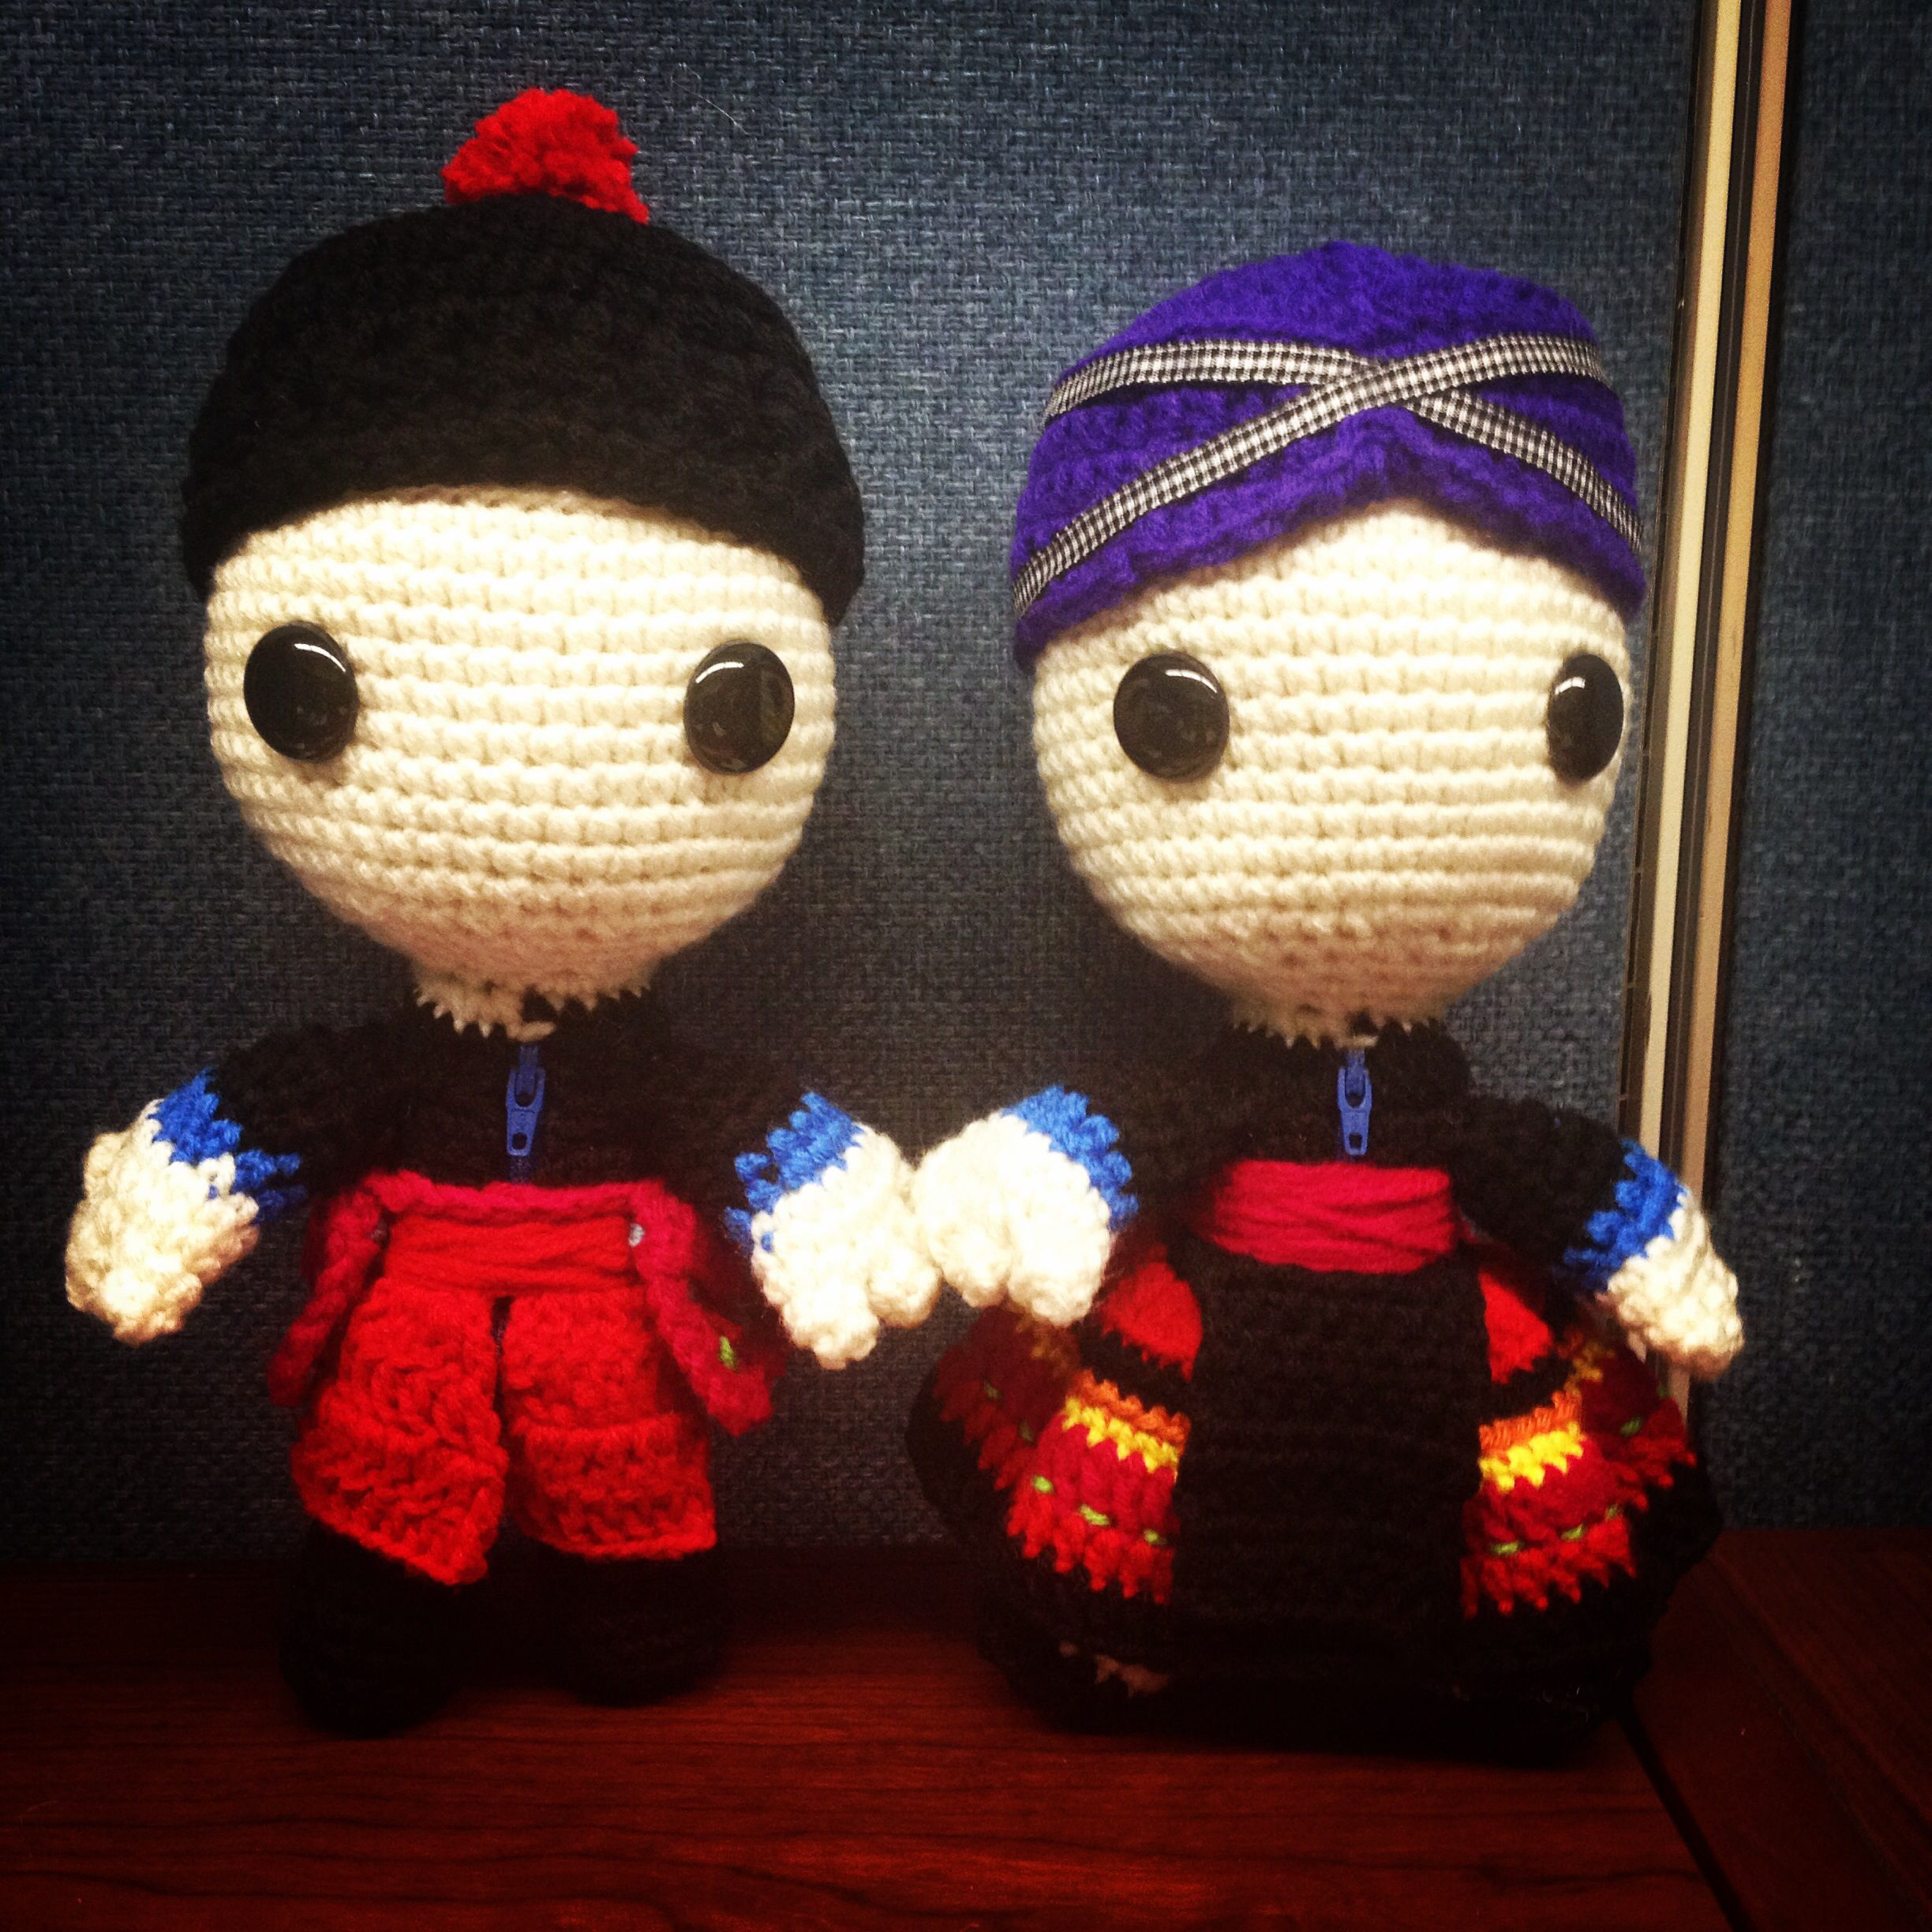 Hmong Crochet Little Big Planet Sackboy Amigurumi | Crochet Love ...